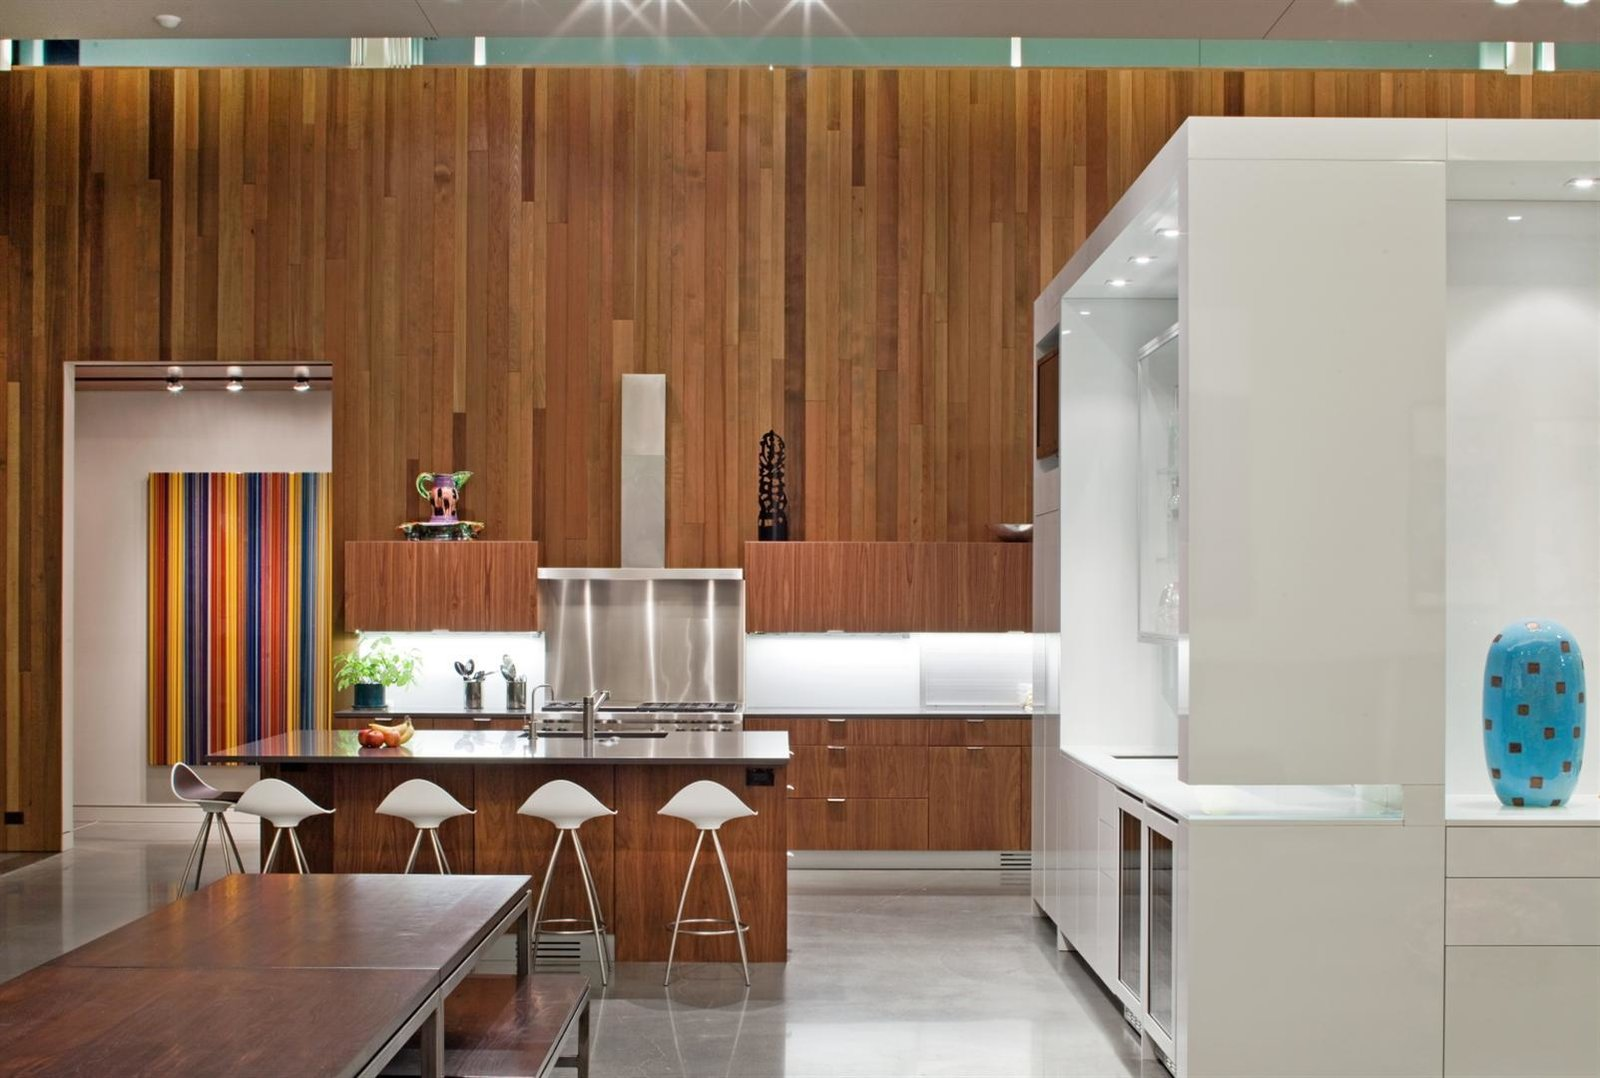 """The house features 16-foot-high ceilings and is heated and cooled primarily from geothermal ground loops, with radiant lines inside the concrete floors. A central """"cube"""" designed and fabricated by the architects offers pantry storage and delineates the kitchen, living, and bar areas. The glossy sheen comes courtesy of white automotive paint.  Photo 11 of 12 in Material Spotlight: 11 Hardworking Uses of Western Red Cedar from Omaha Art-Inspired House"""